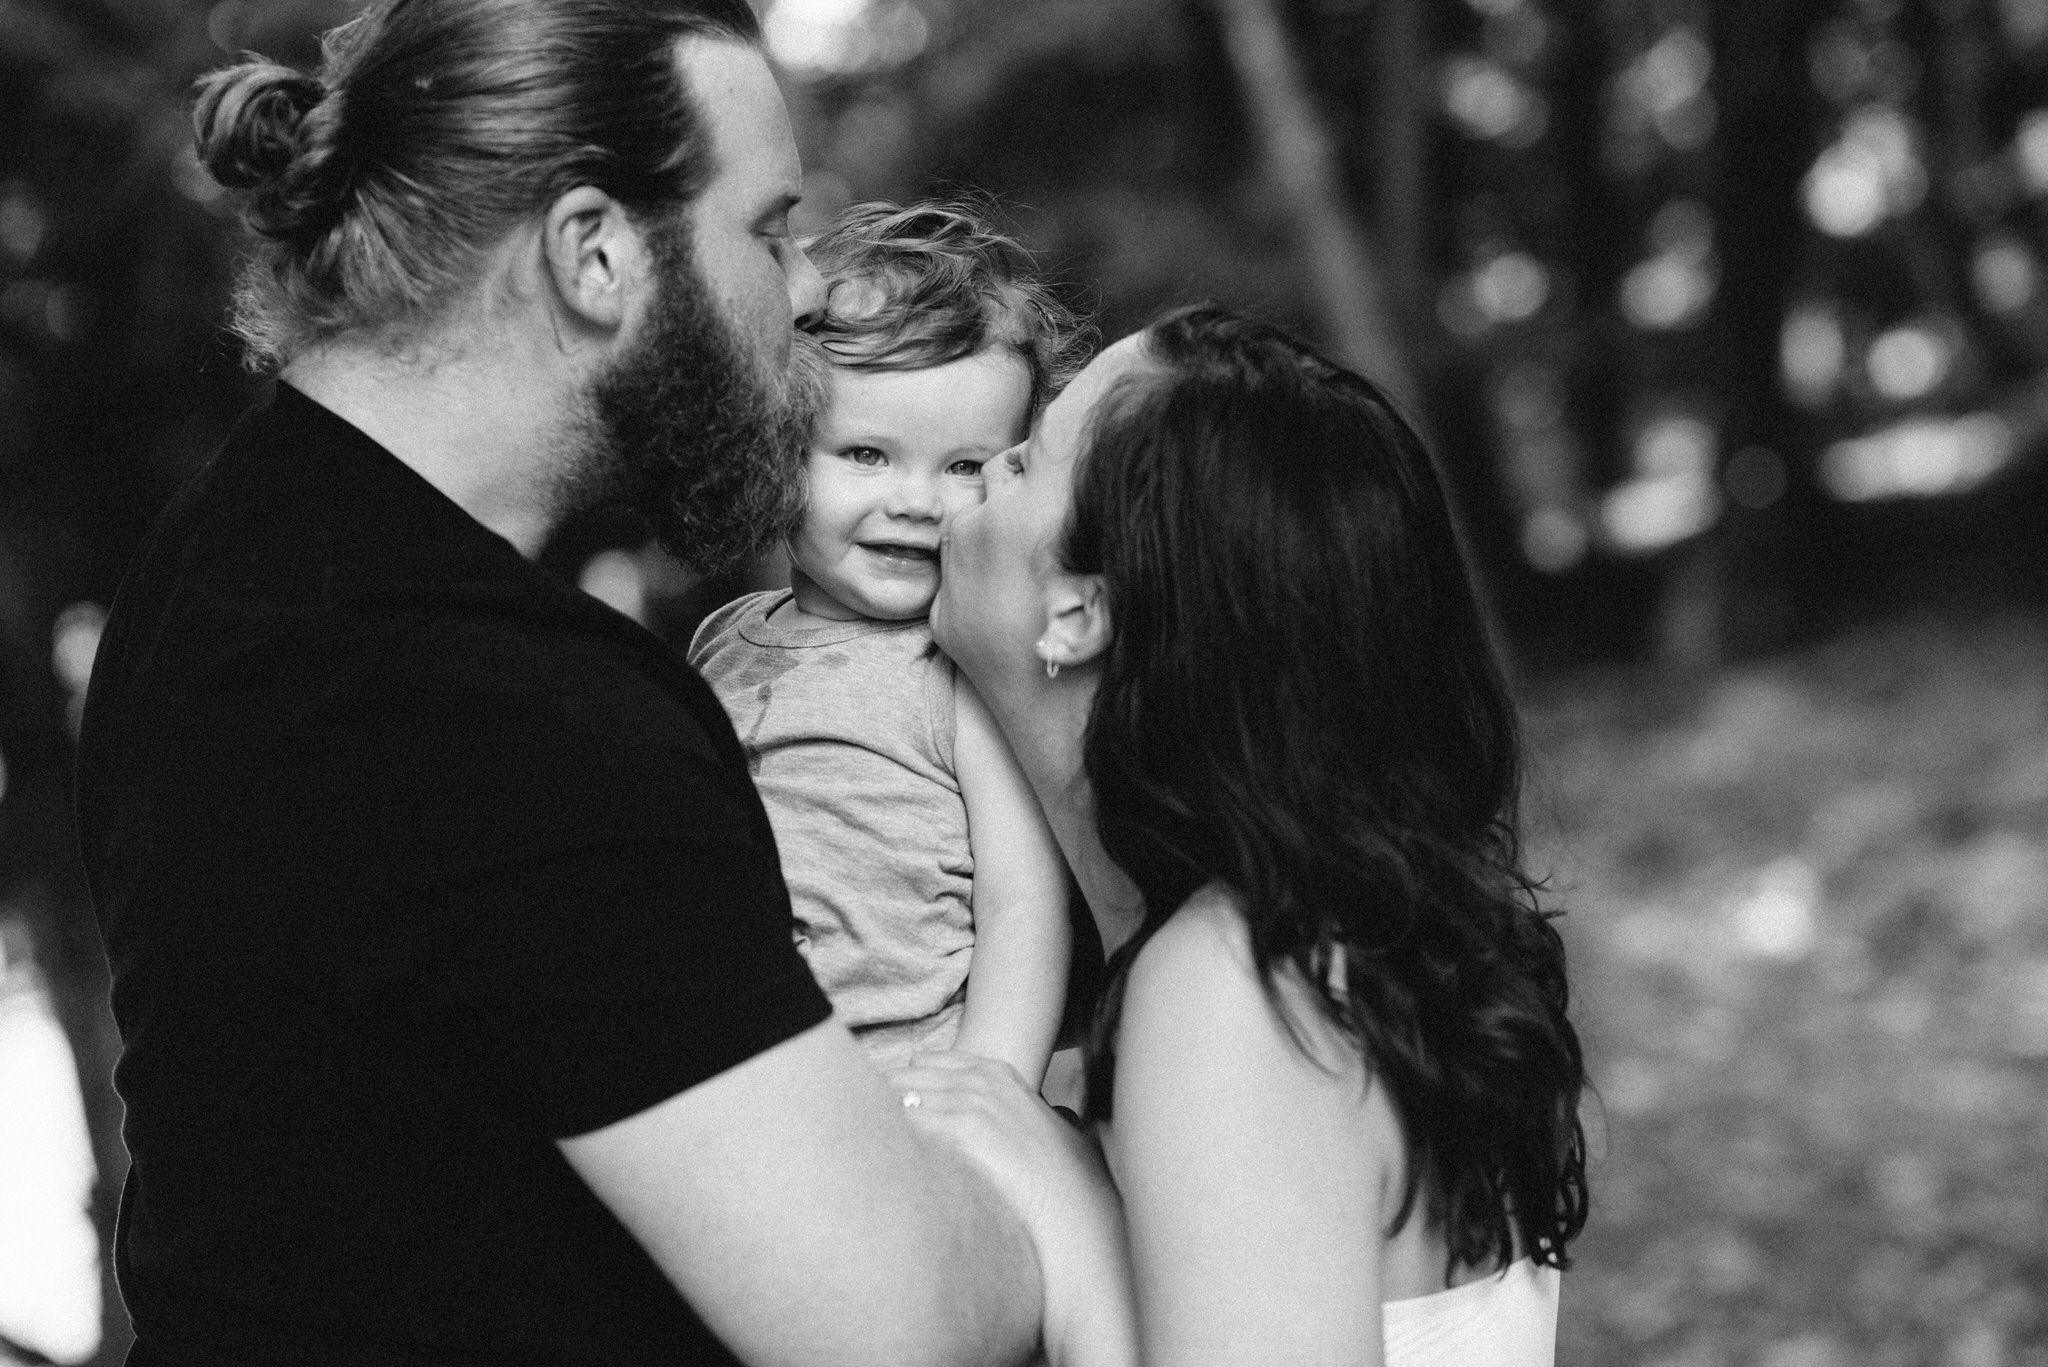 scarlet_oneill_family_sessions10.JPG